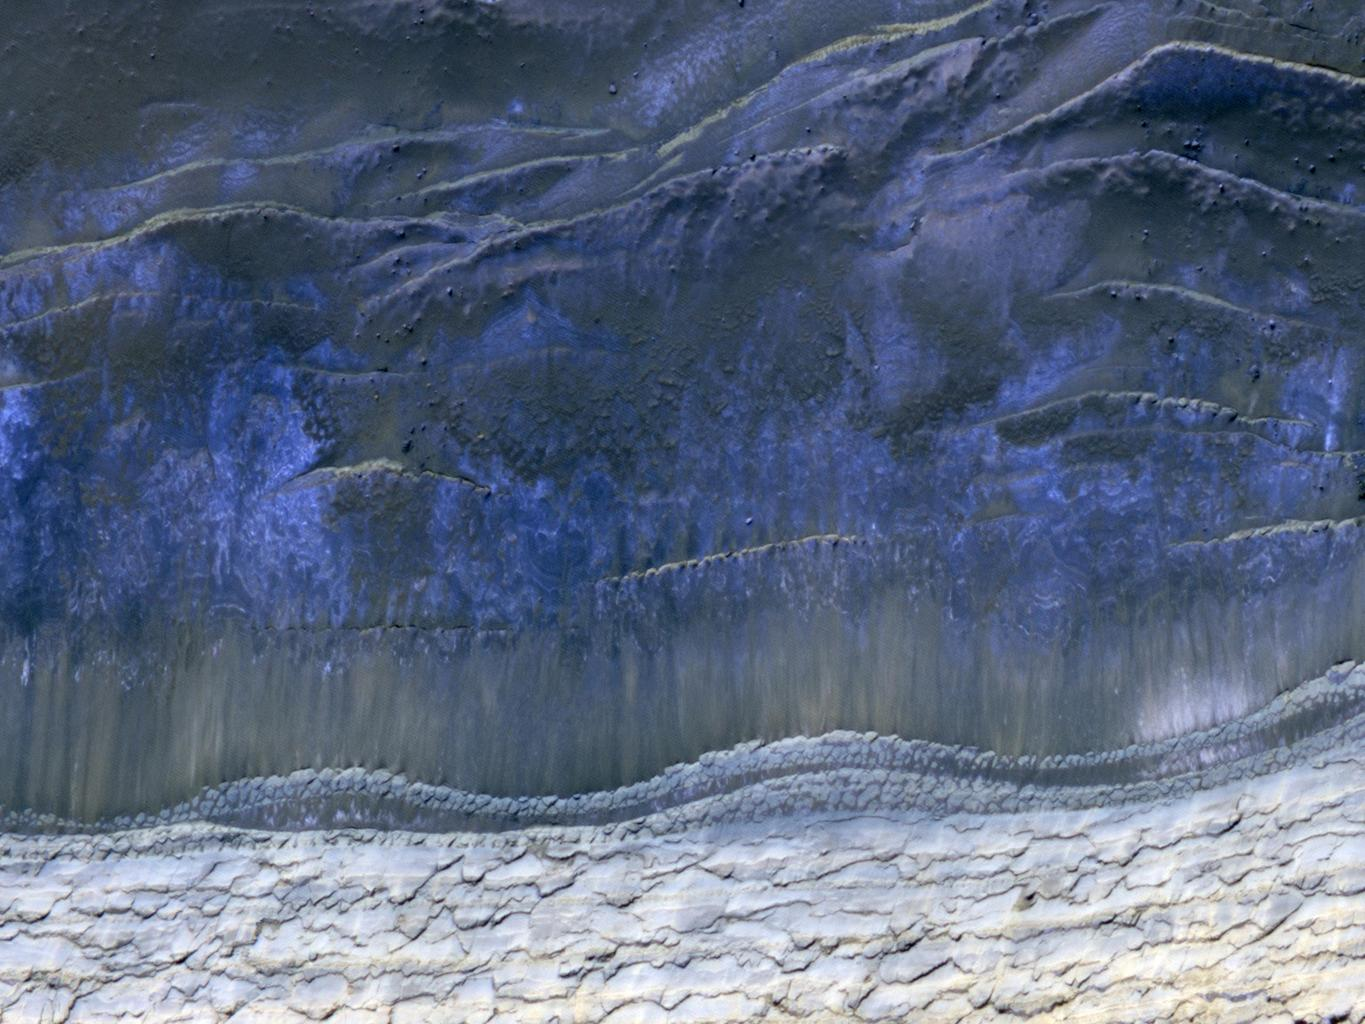 This image from NASA's Mars Reconnaissance Orbiter shows the scarp that demarcates the boundary between layered deposits covering the north polar region and the lower surrounding terrain, which includes sand dunes. Original release date March 3, 2010.